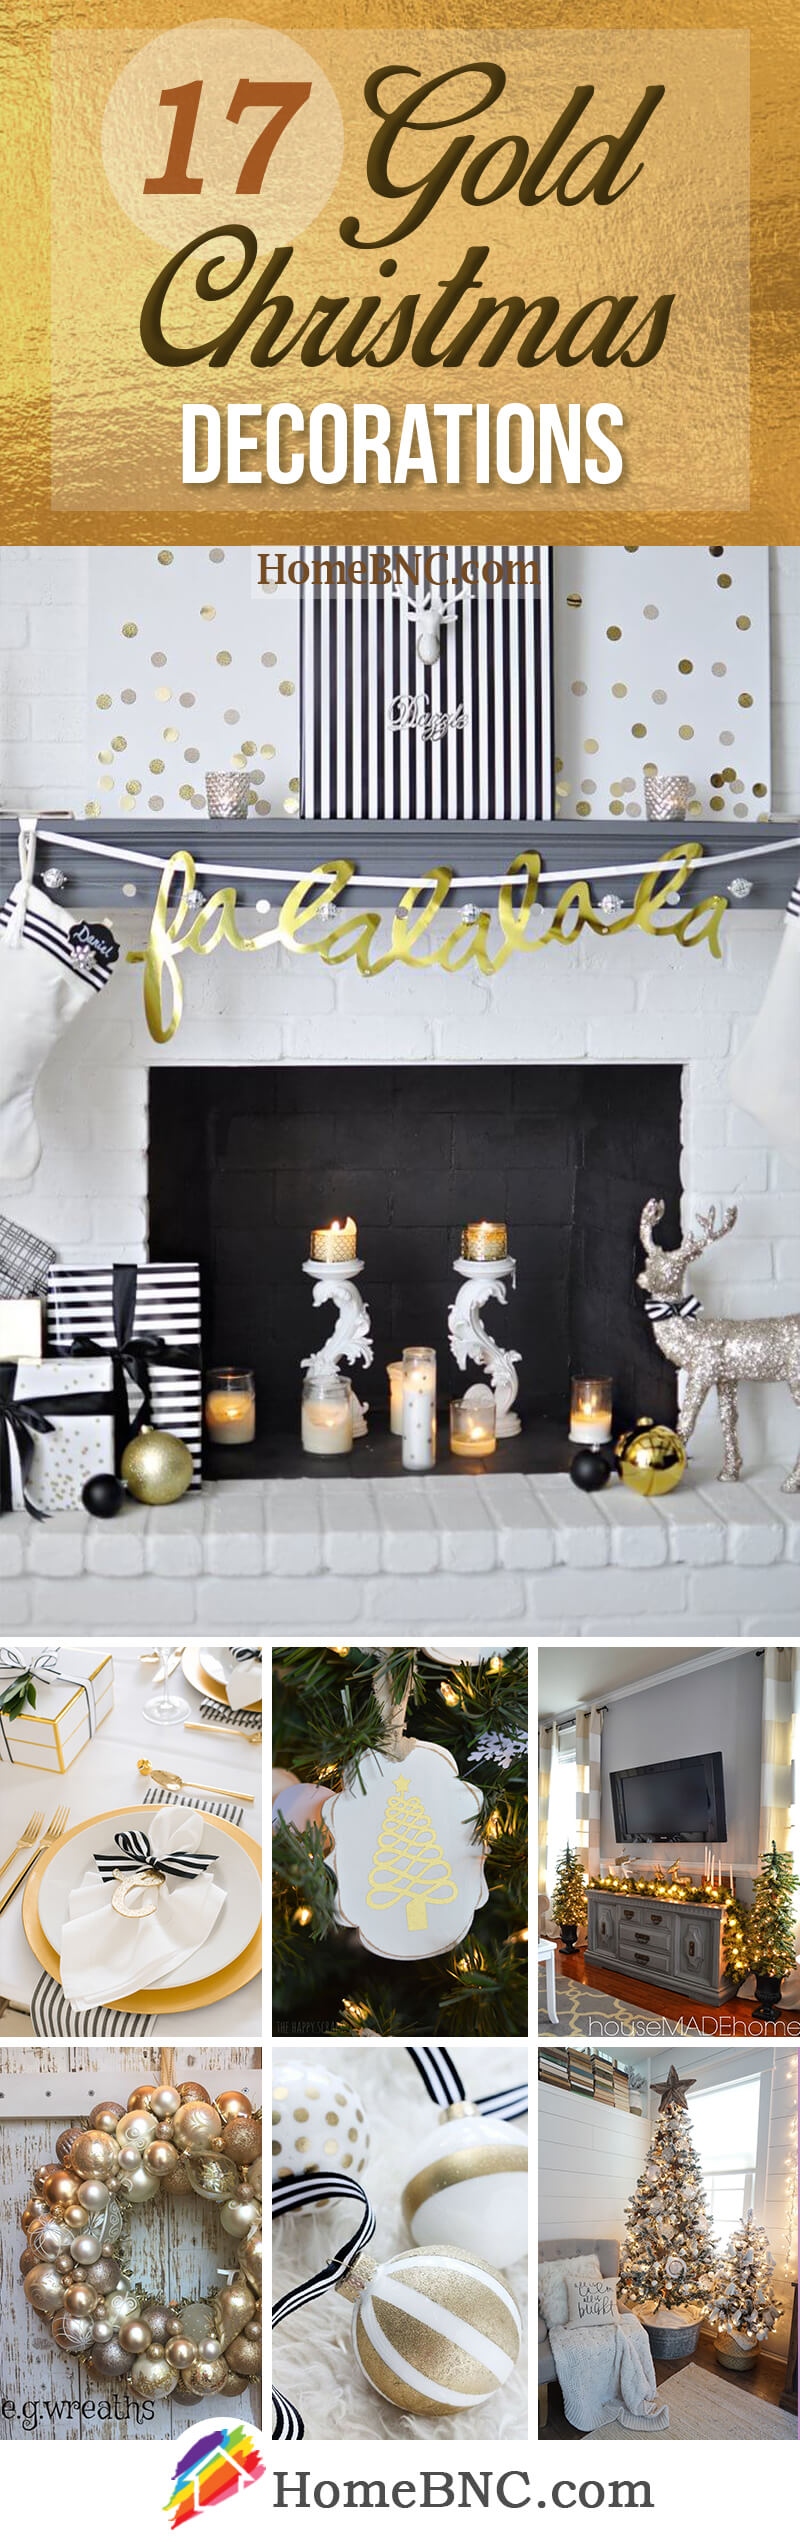 Gold Christmas Design Ideas